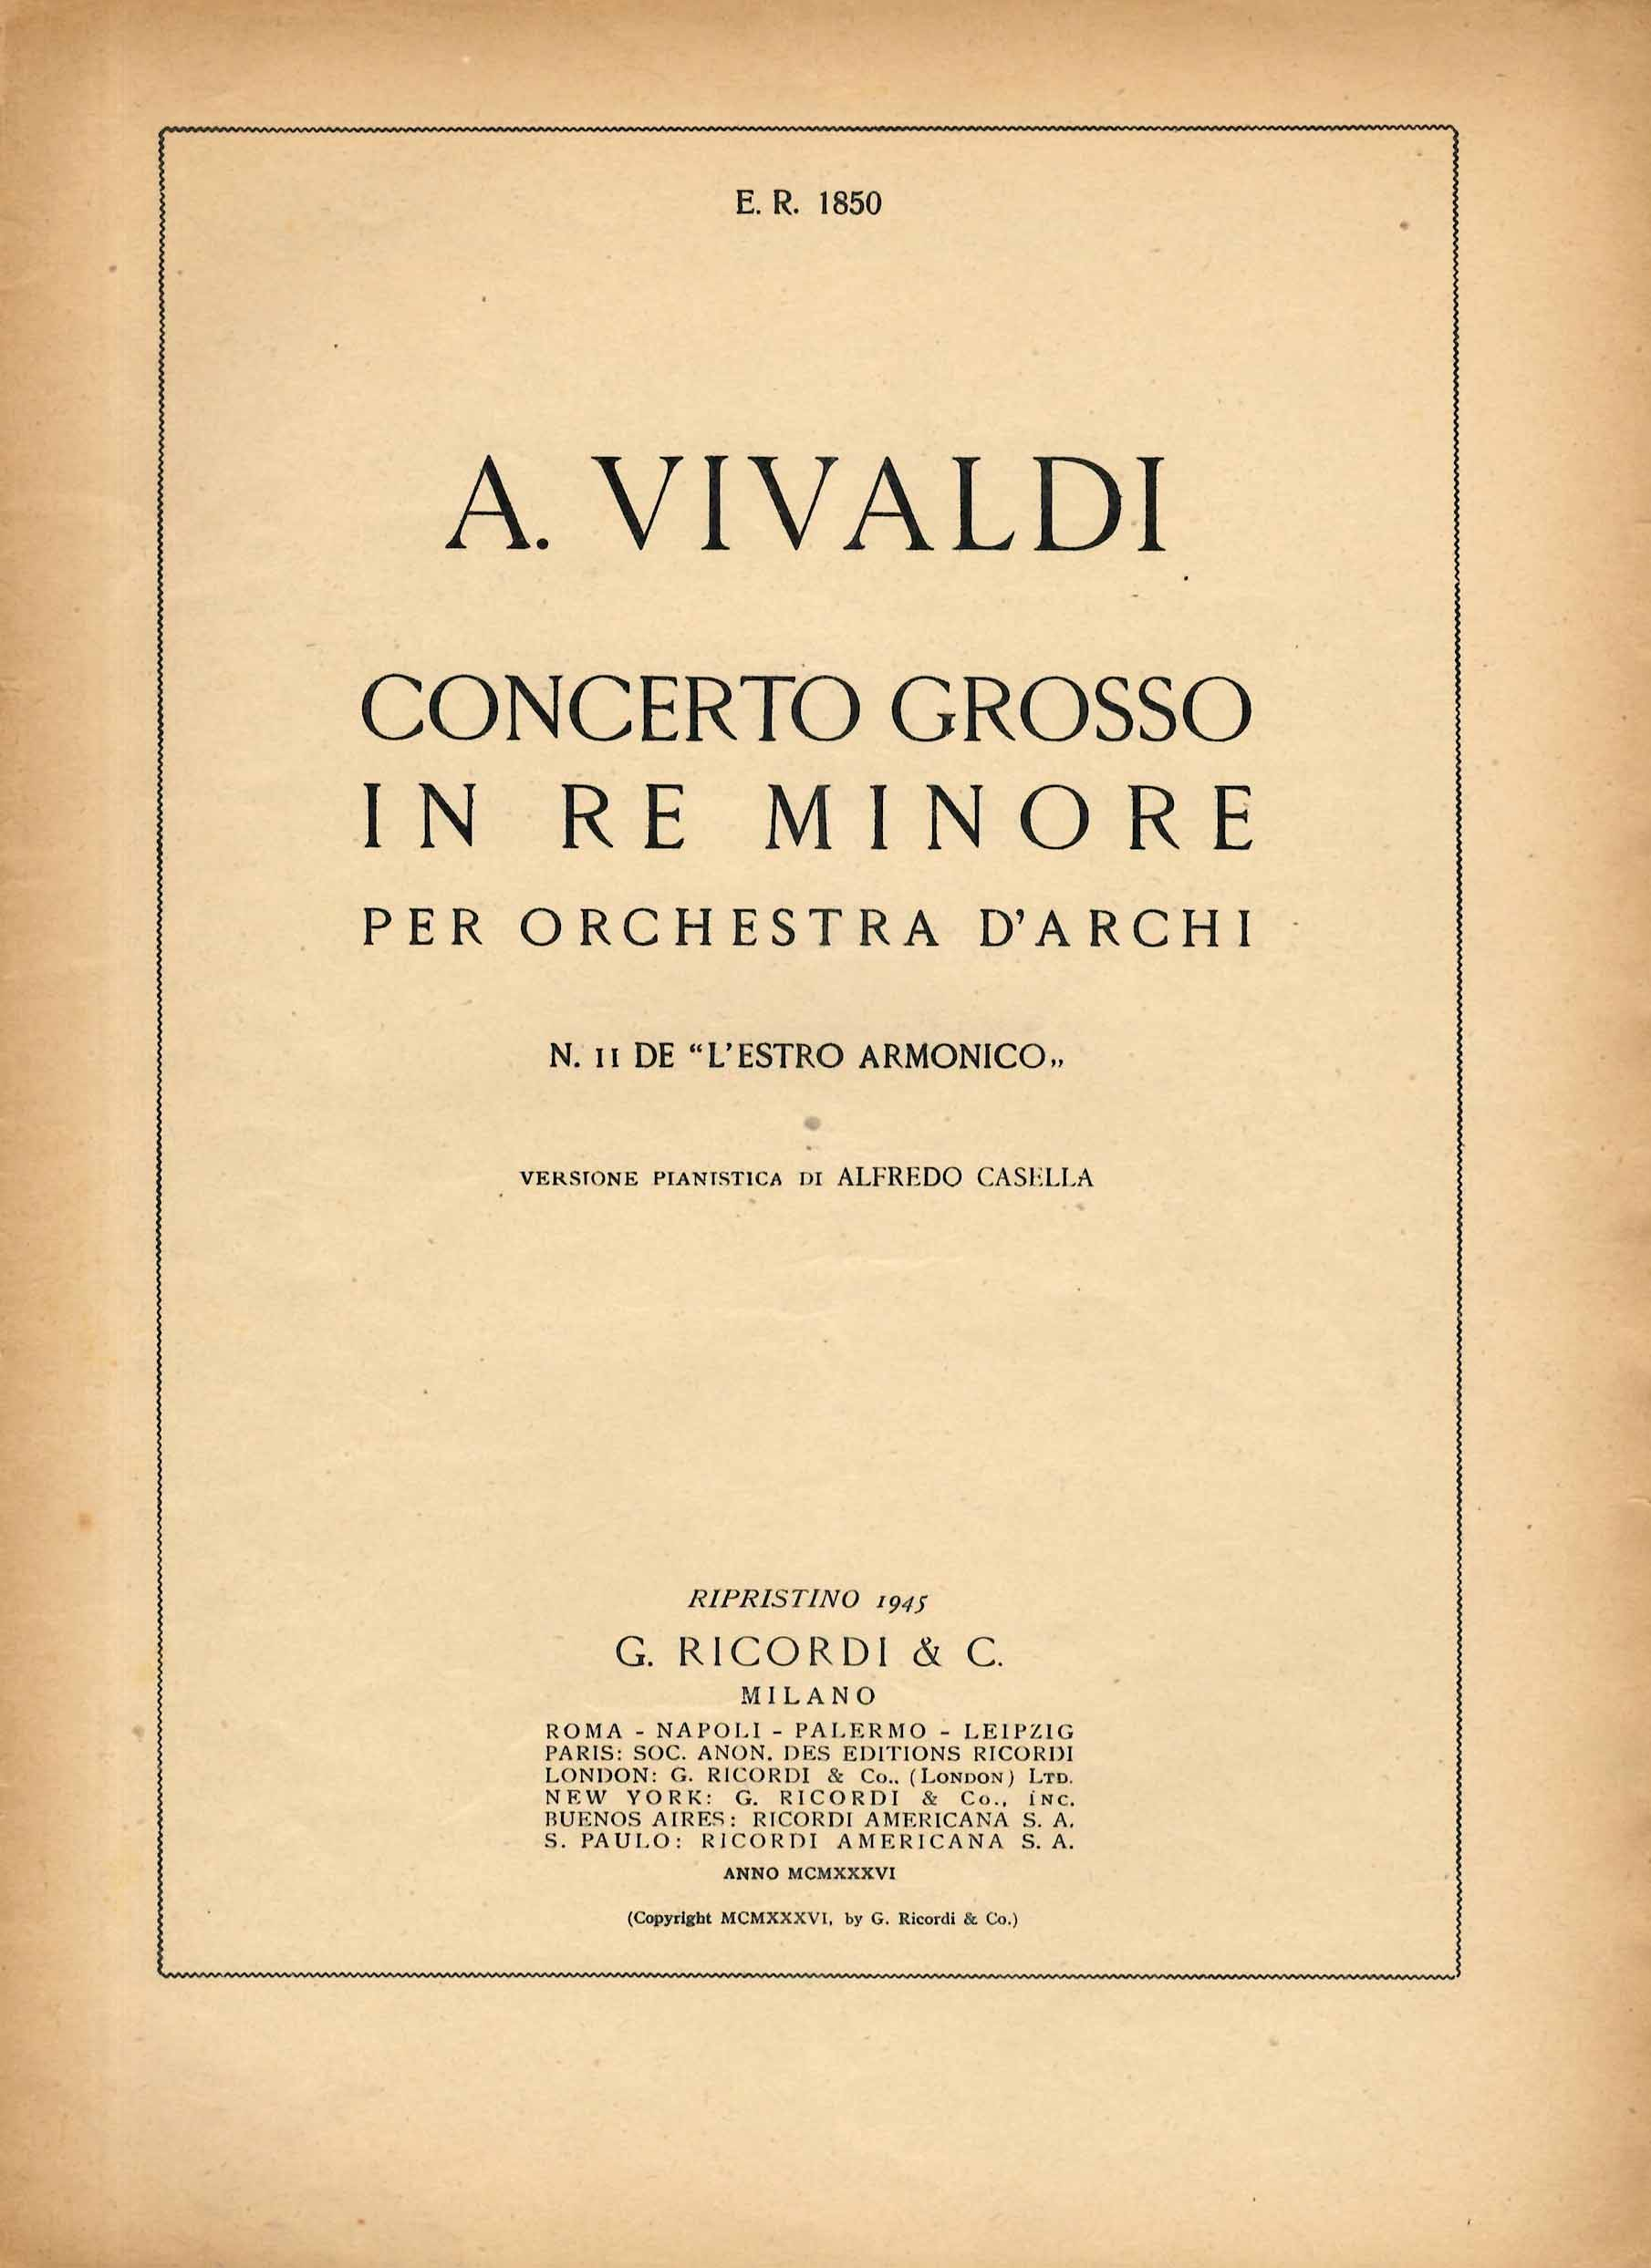 Concerto grosso in Re minore per orchestra d